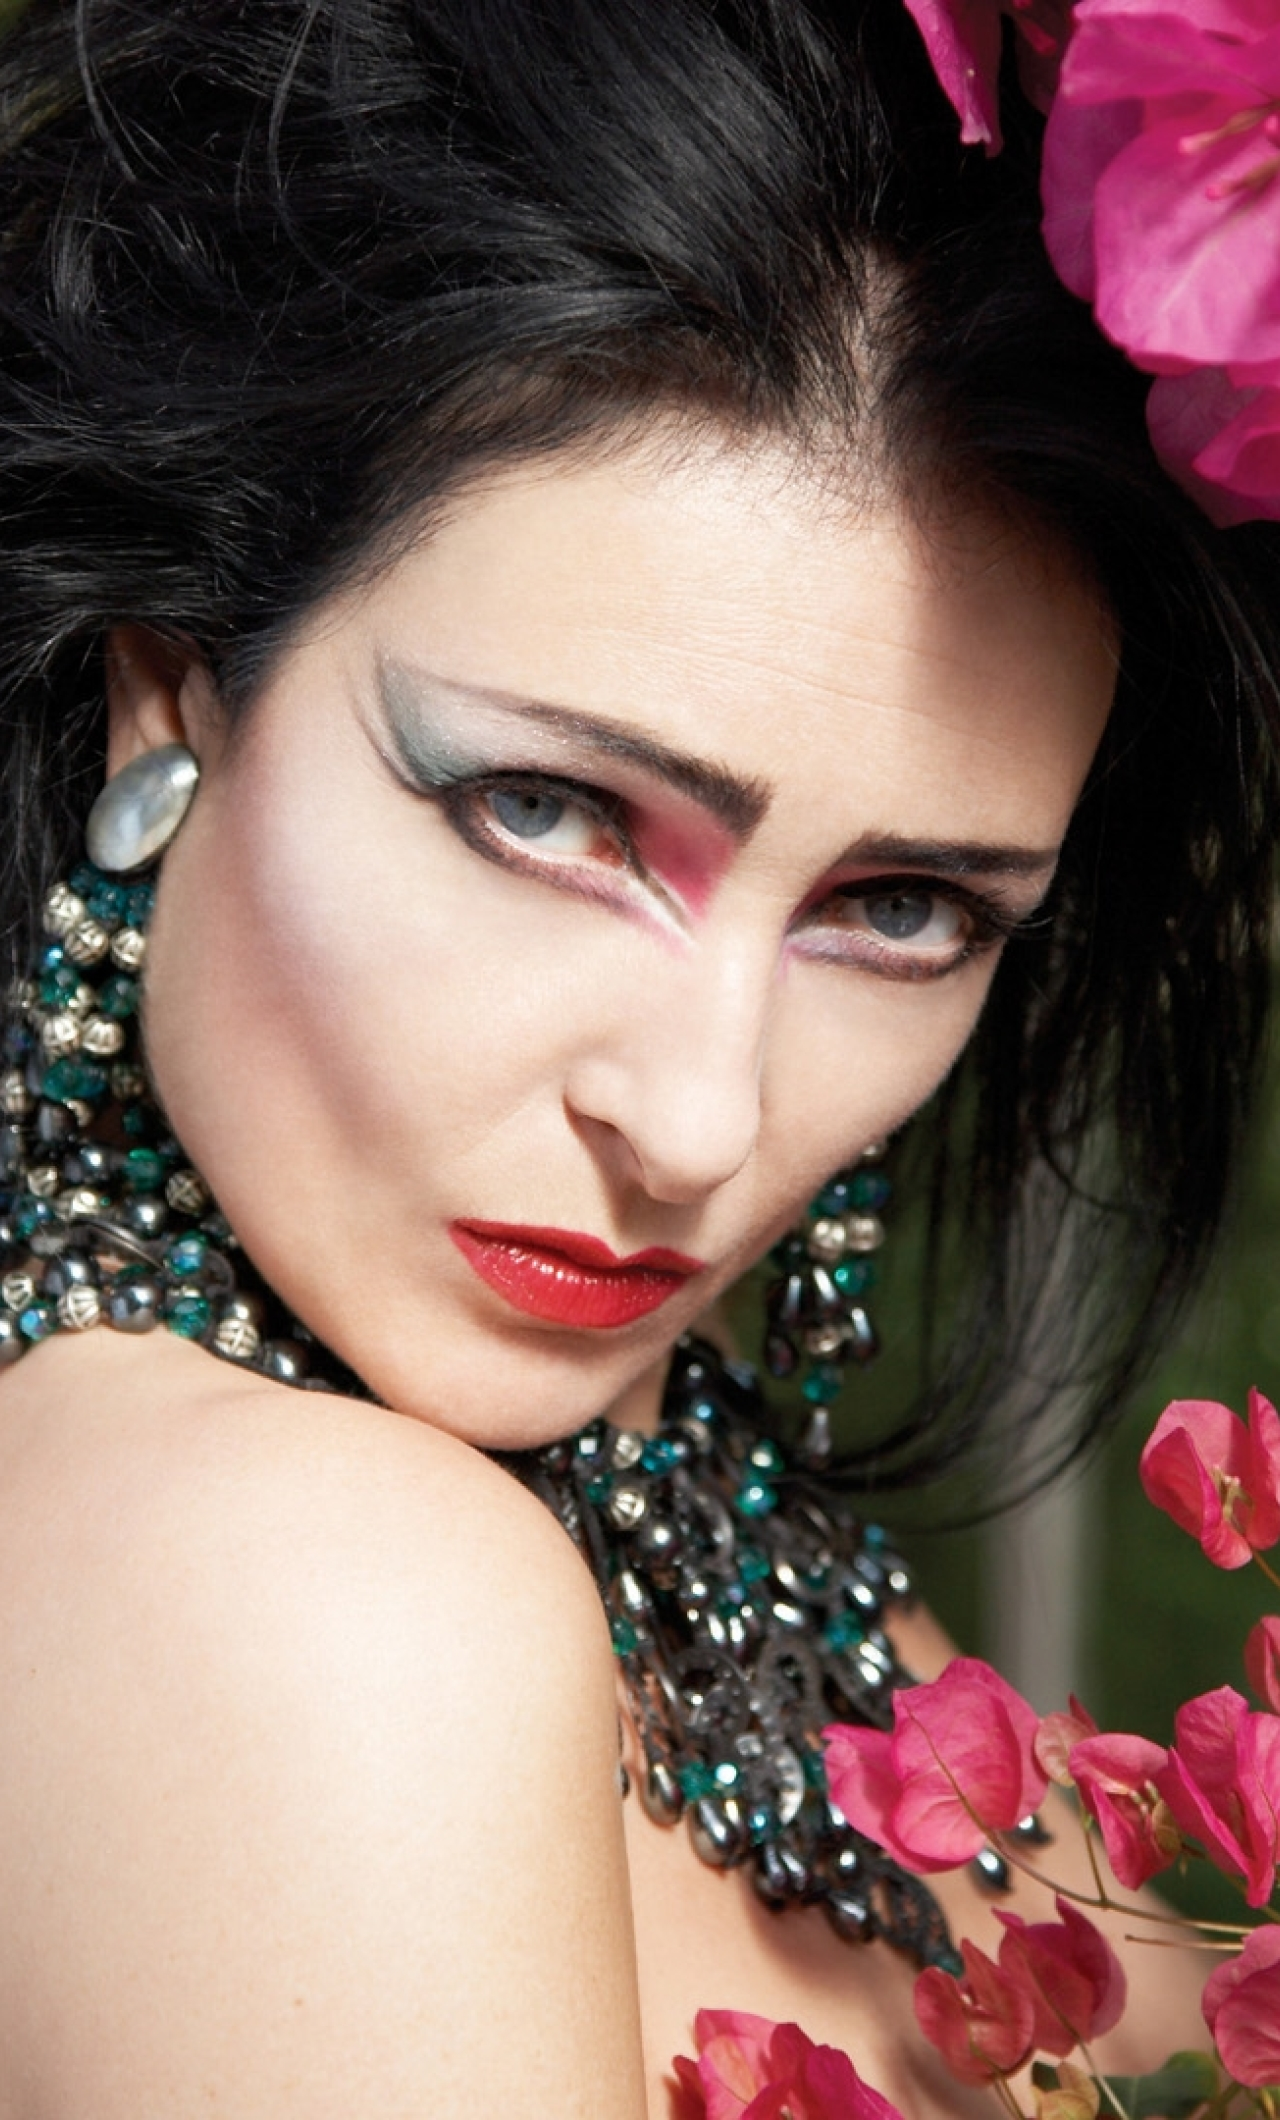 1280x2120 Siouxsie And The Banshees Girl Jewerly Iphone 6 Plus